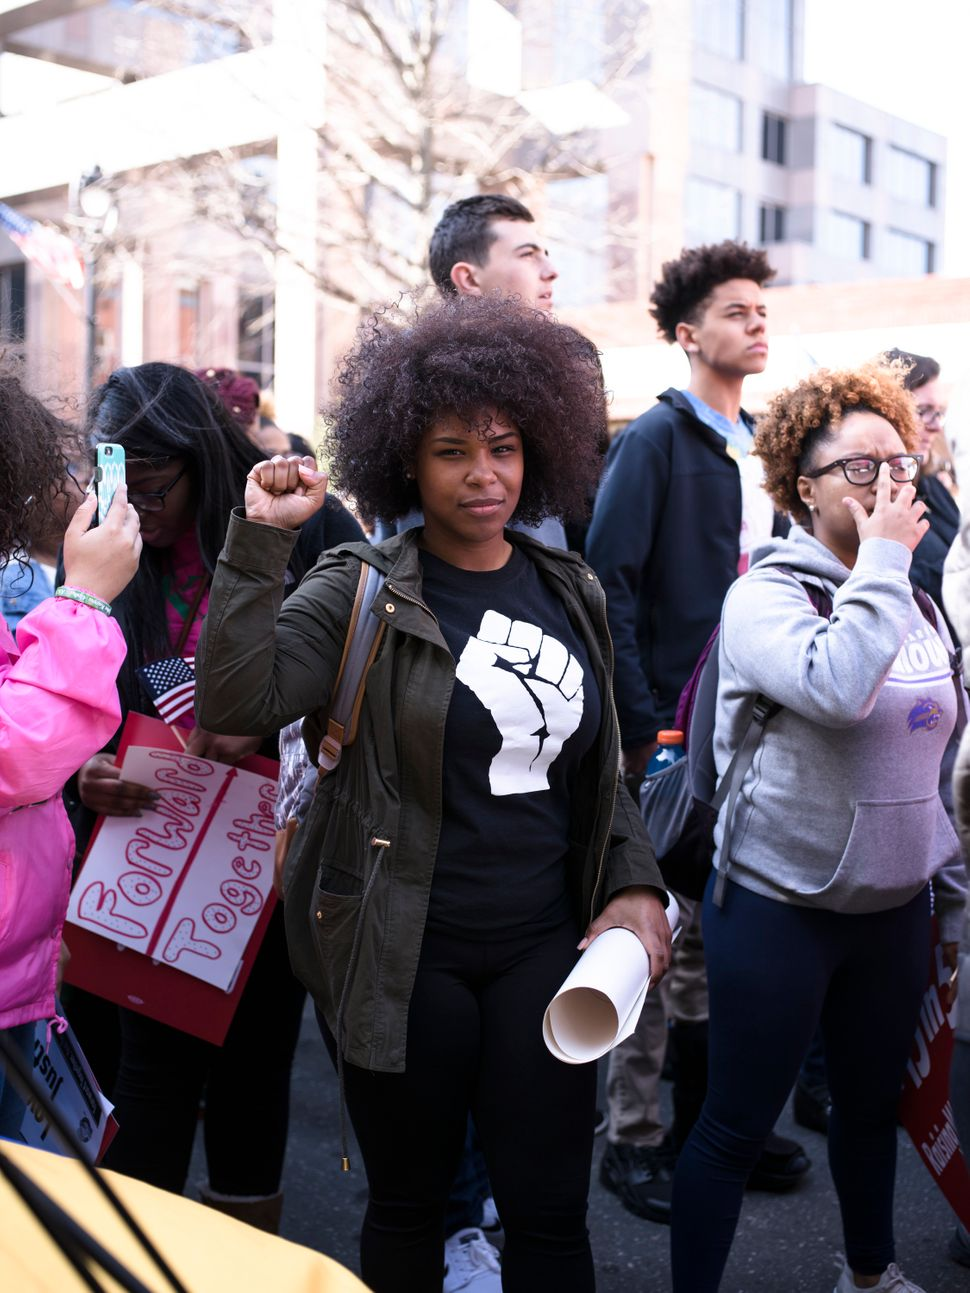 A woman holds up her fist during the Moral March on Feb 11.